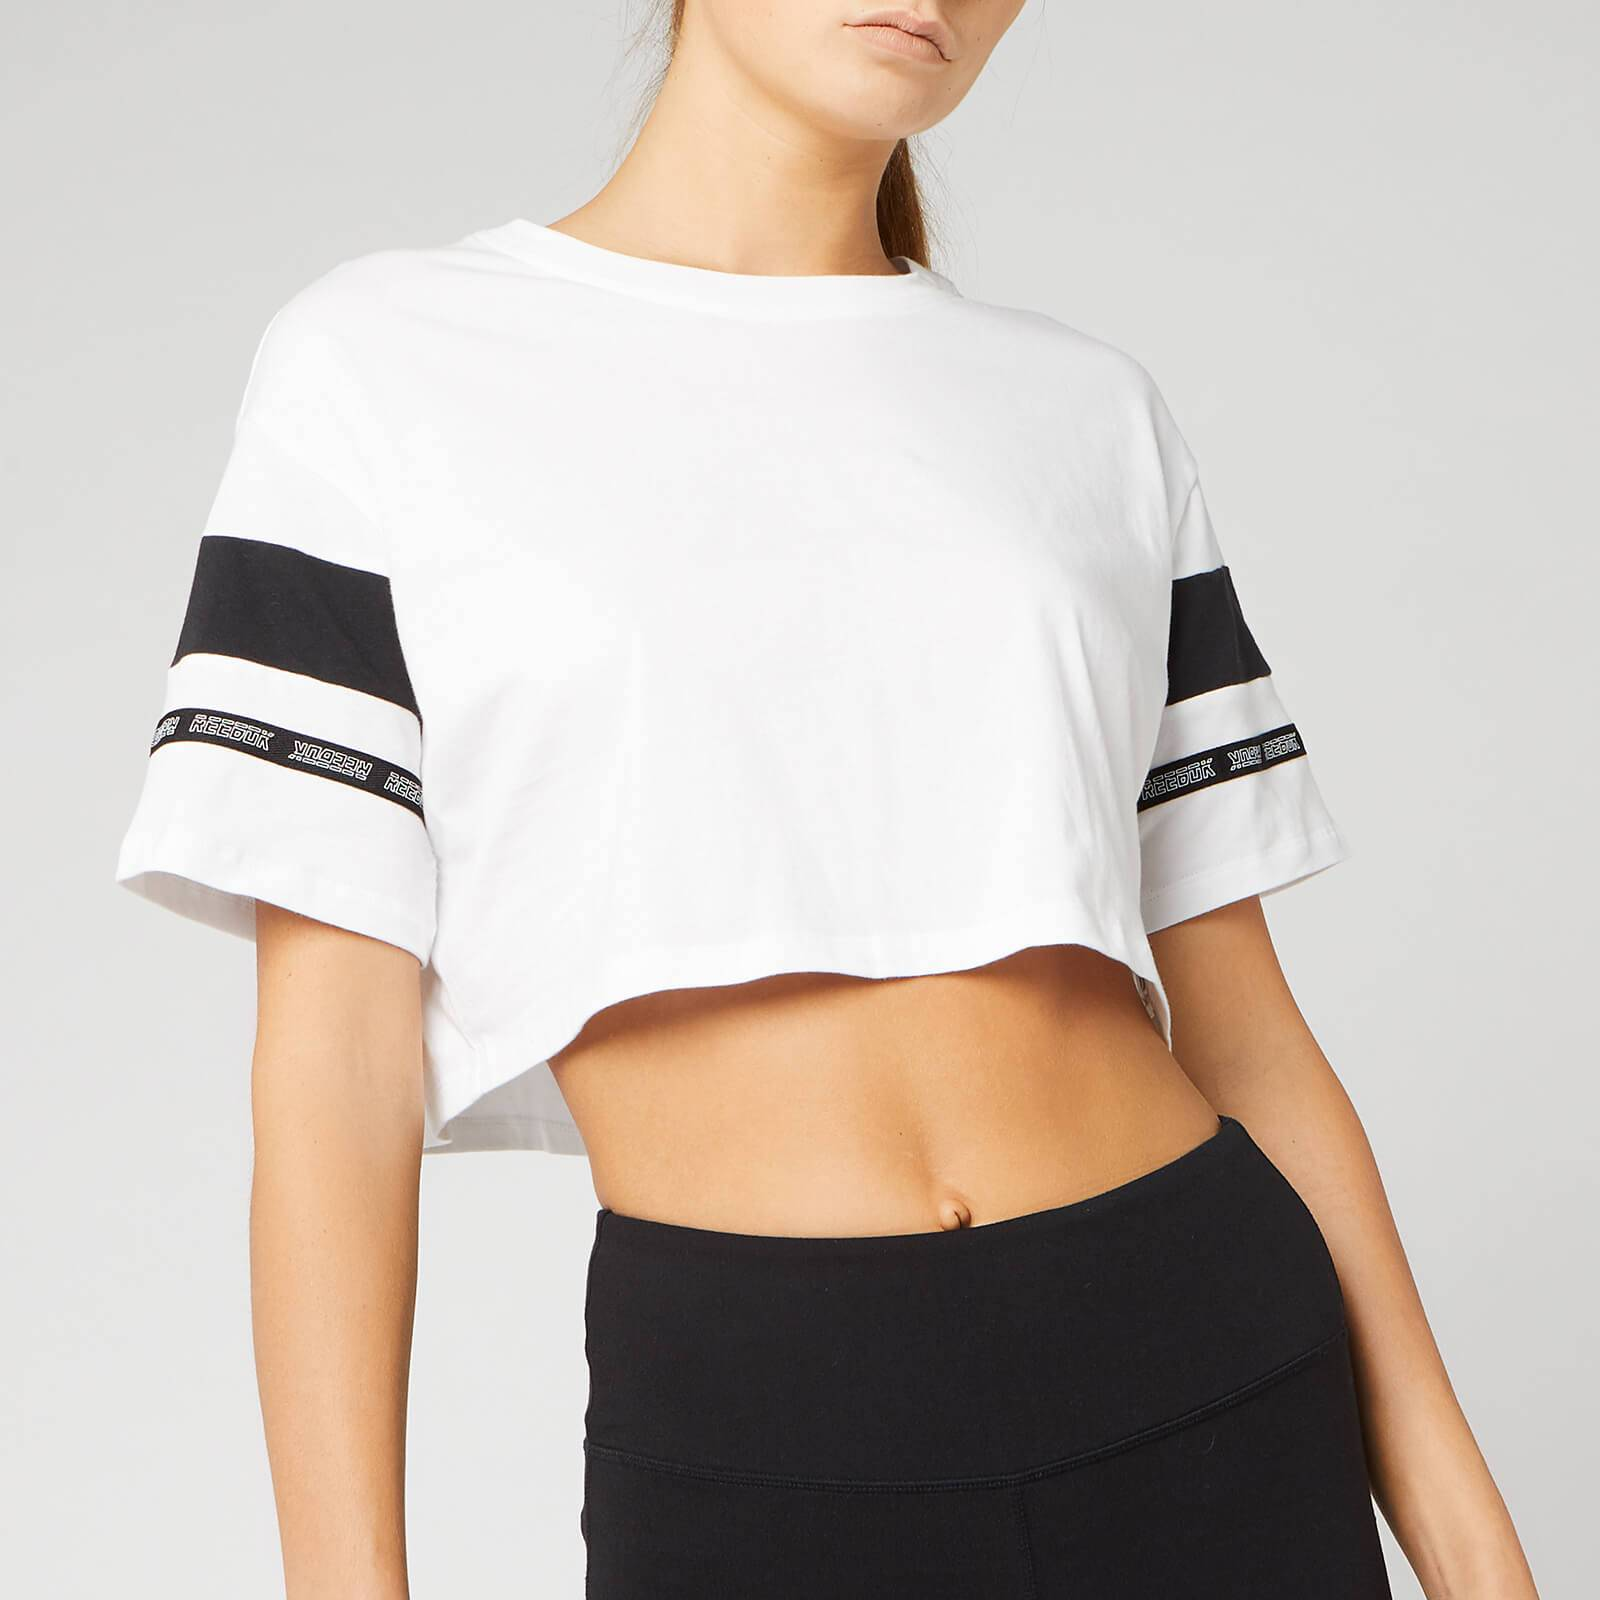 Reebok Women's WOR MYT Solid Cropped Short Sleeve T-Shirt - White - M - White